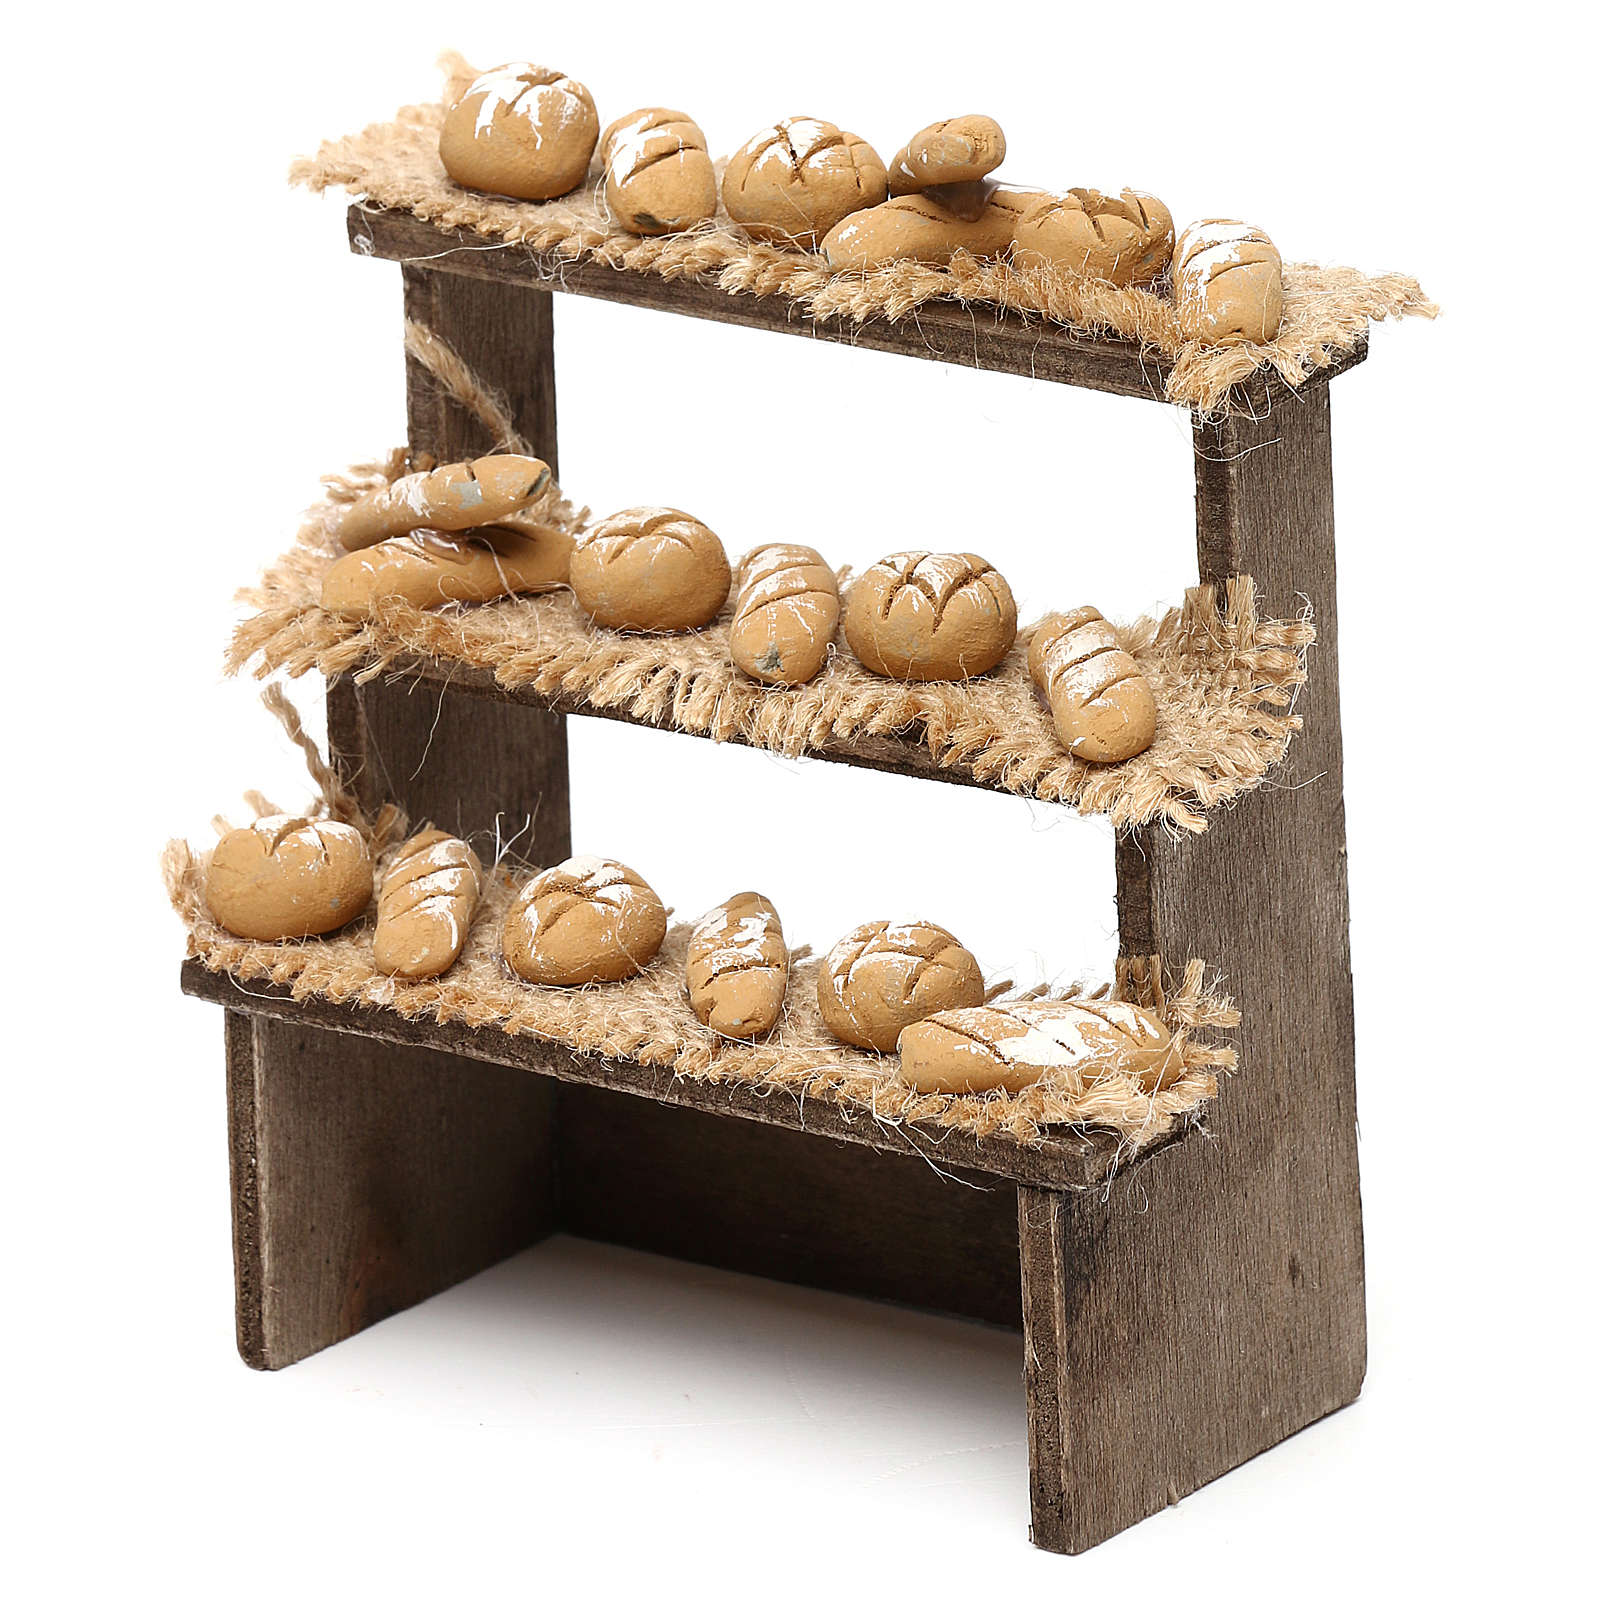 Bench on three levels with bread for Neapolitan Nativity Scene 10 cm 4